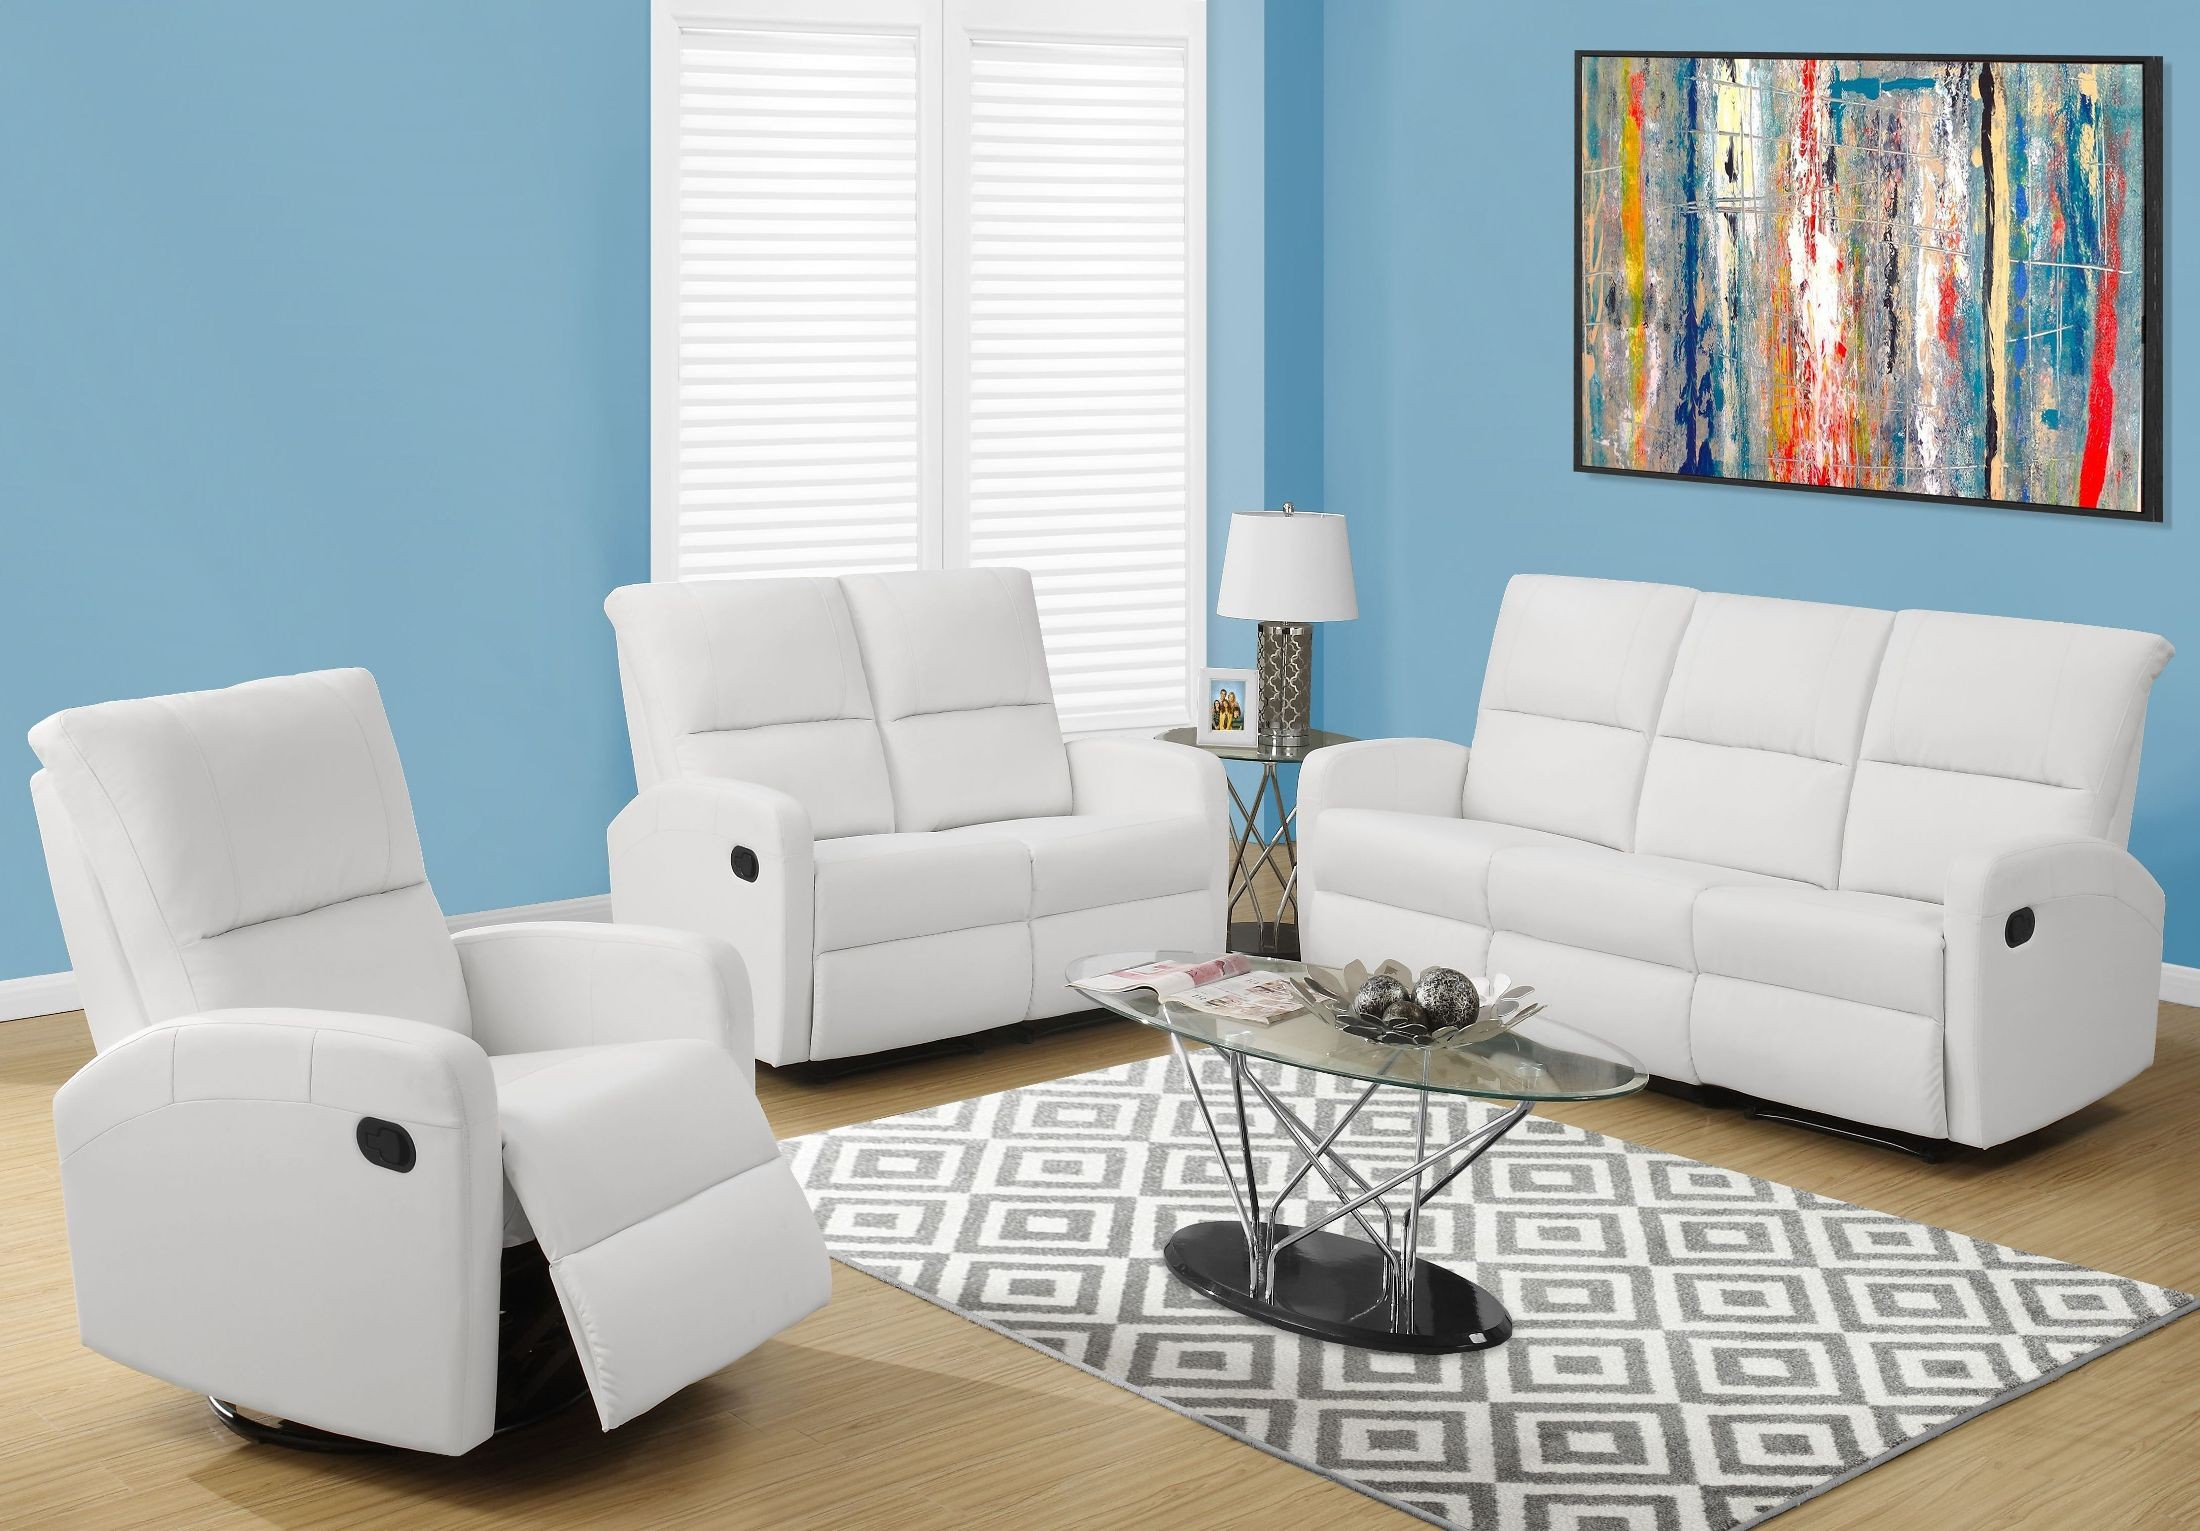 84wh 3 white bonded leather reclining living room set from for White leather living room set